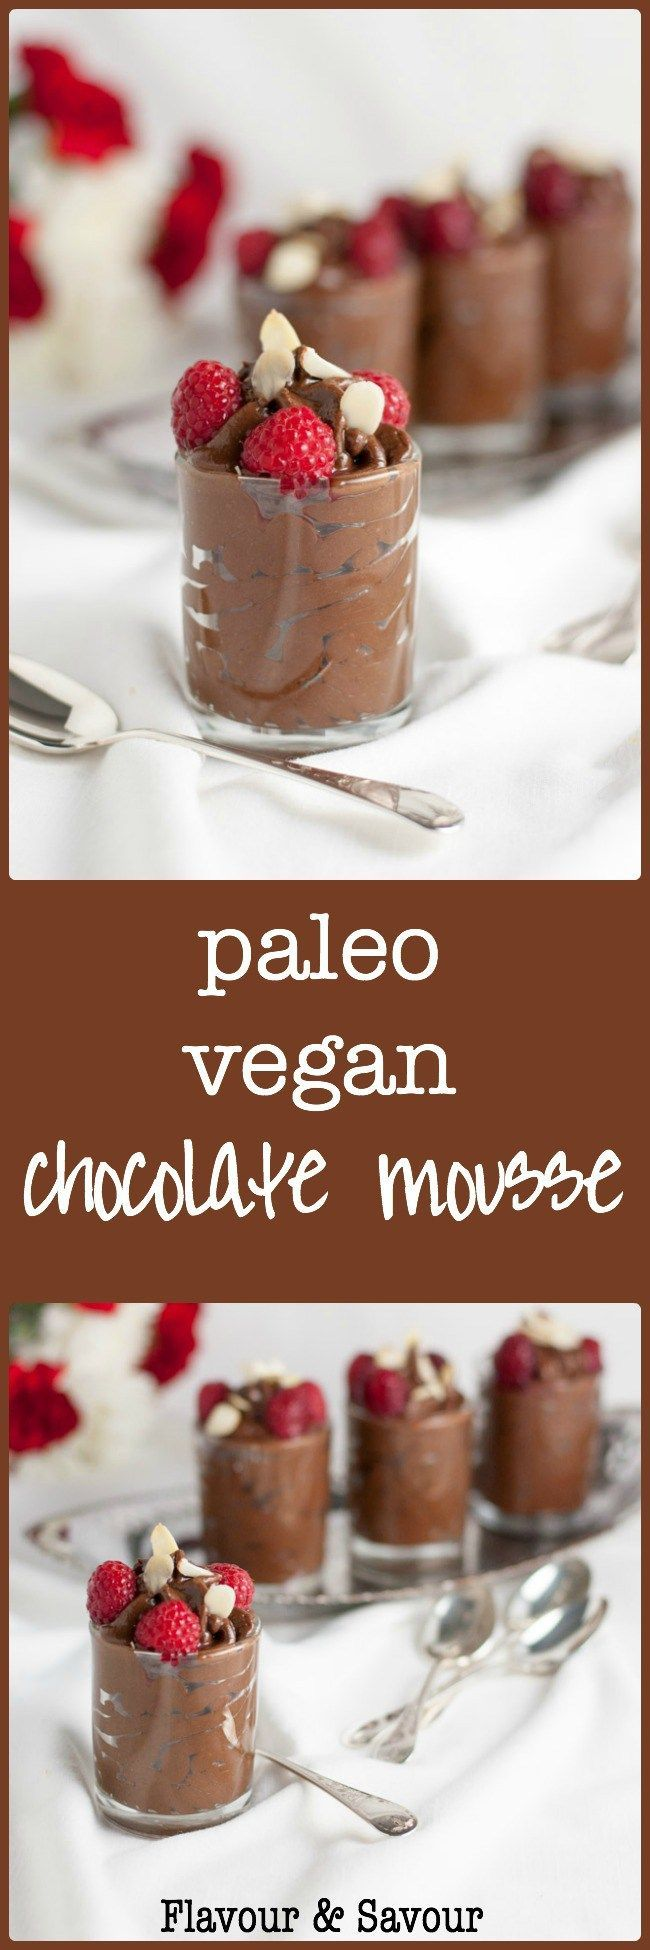 Paleo Chocolate Mousse. Dairy-free and Vegan too. This chocolate mousse is silky smooth, decadent and delicious. Made with avocado, cacao (or cocoa) and naturally sweetened, it's guilt-free.